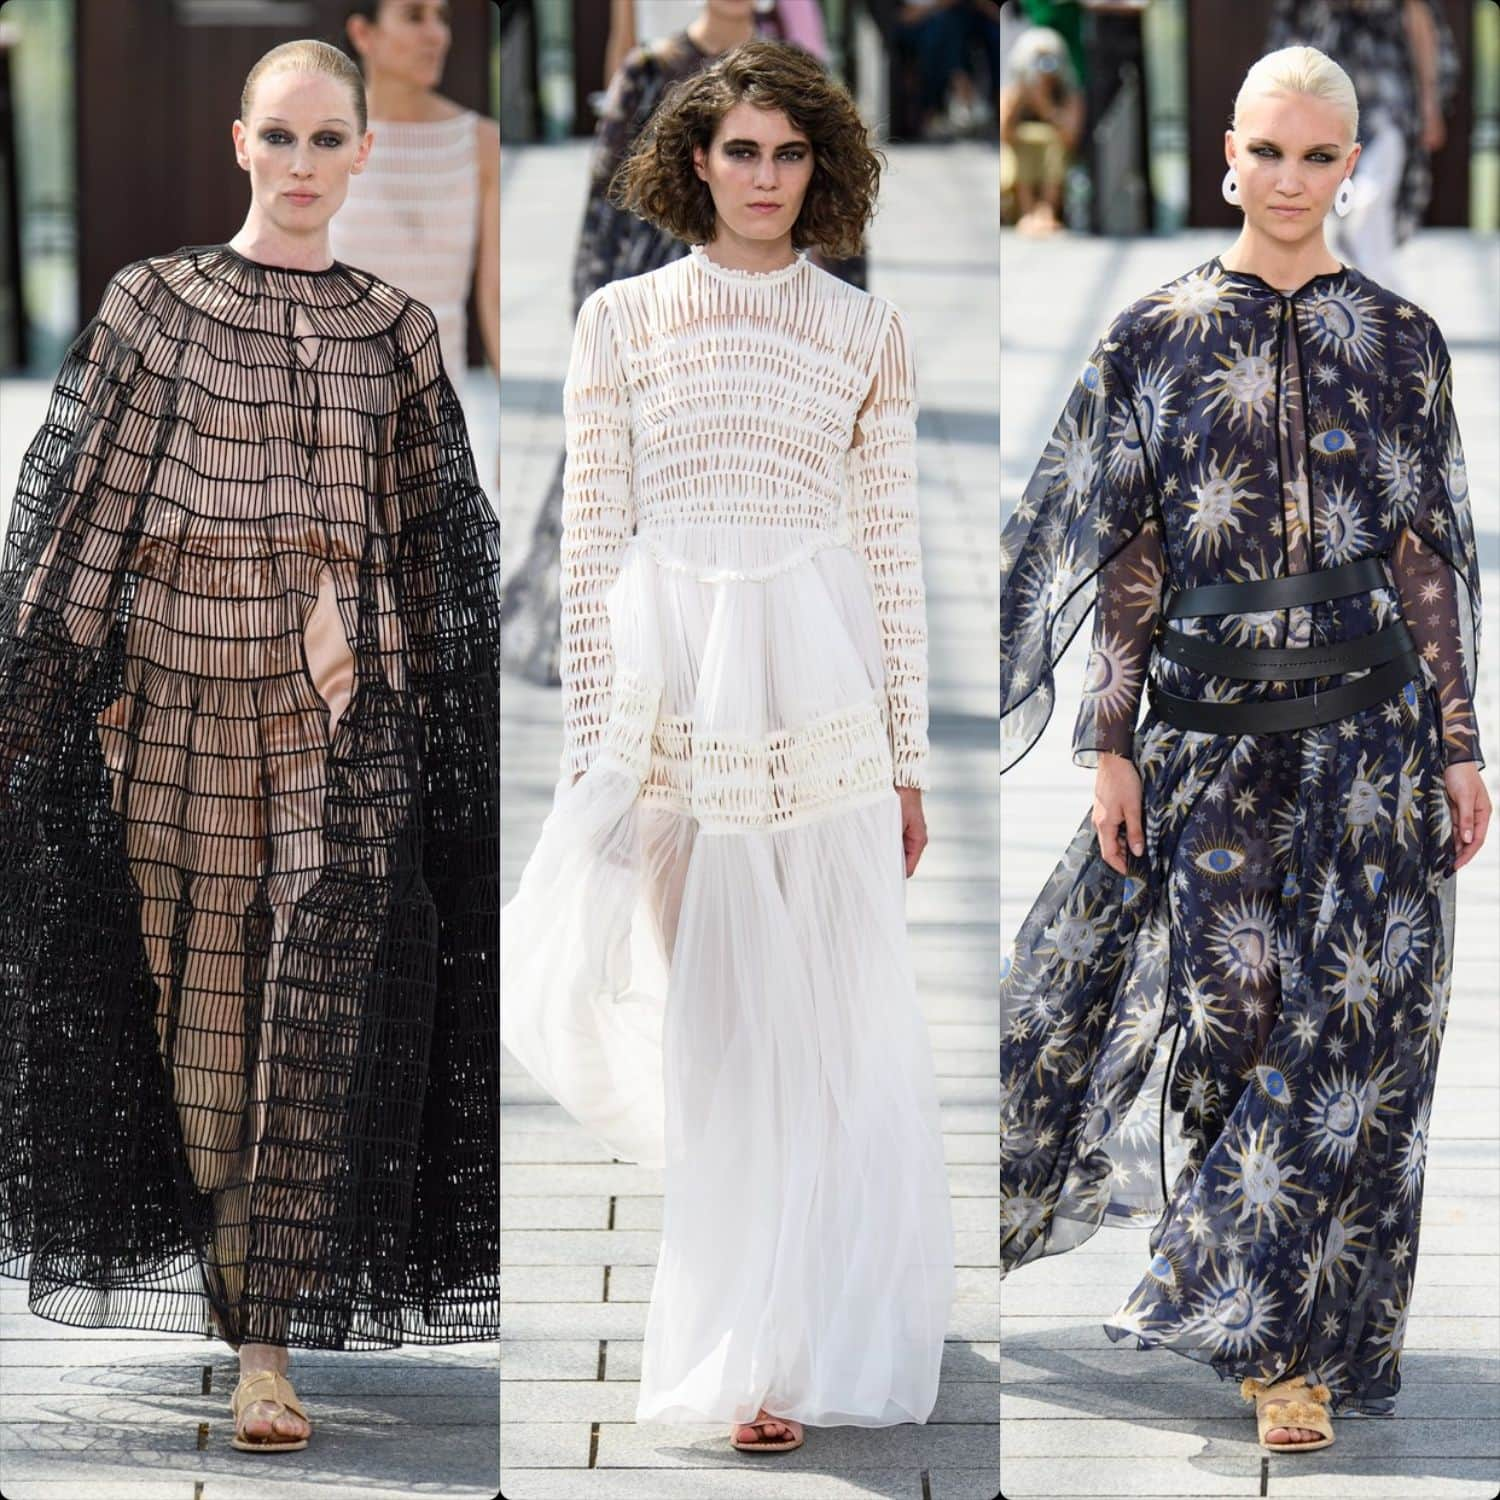 Maison Rabih Kayrouz Haute Couture Fall-Winter 2019-2020. RUNWAY MAGAZINE ® Collections. RUNWAY NOW / RUNWAY NEW